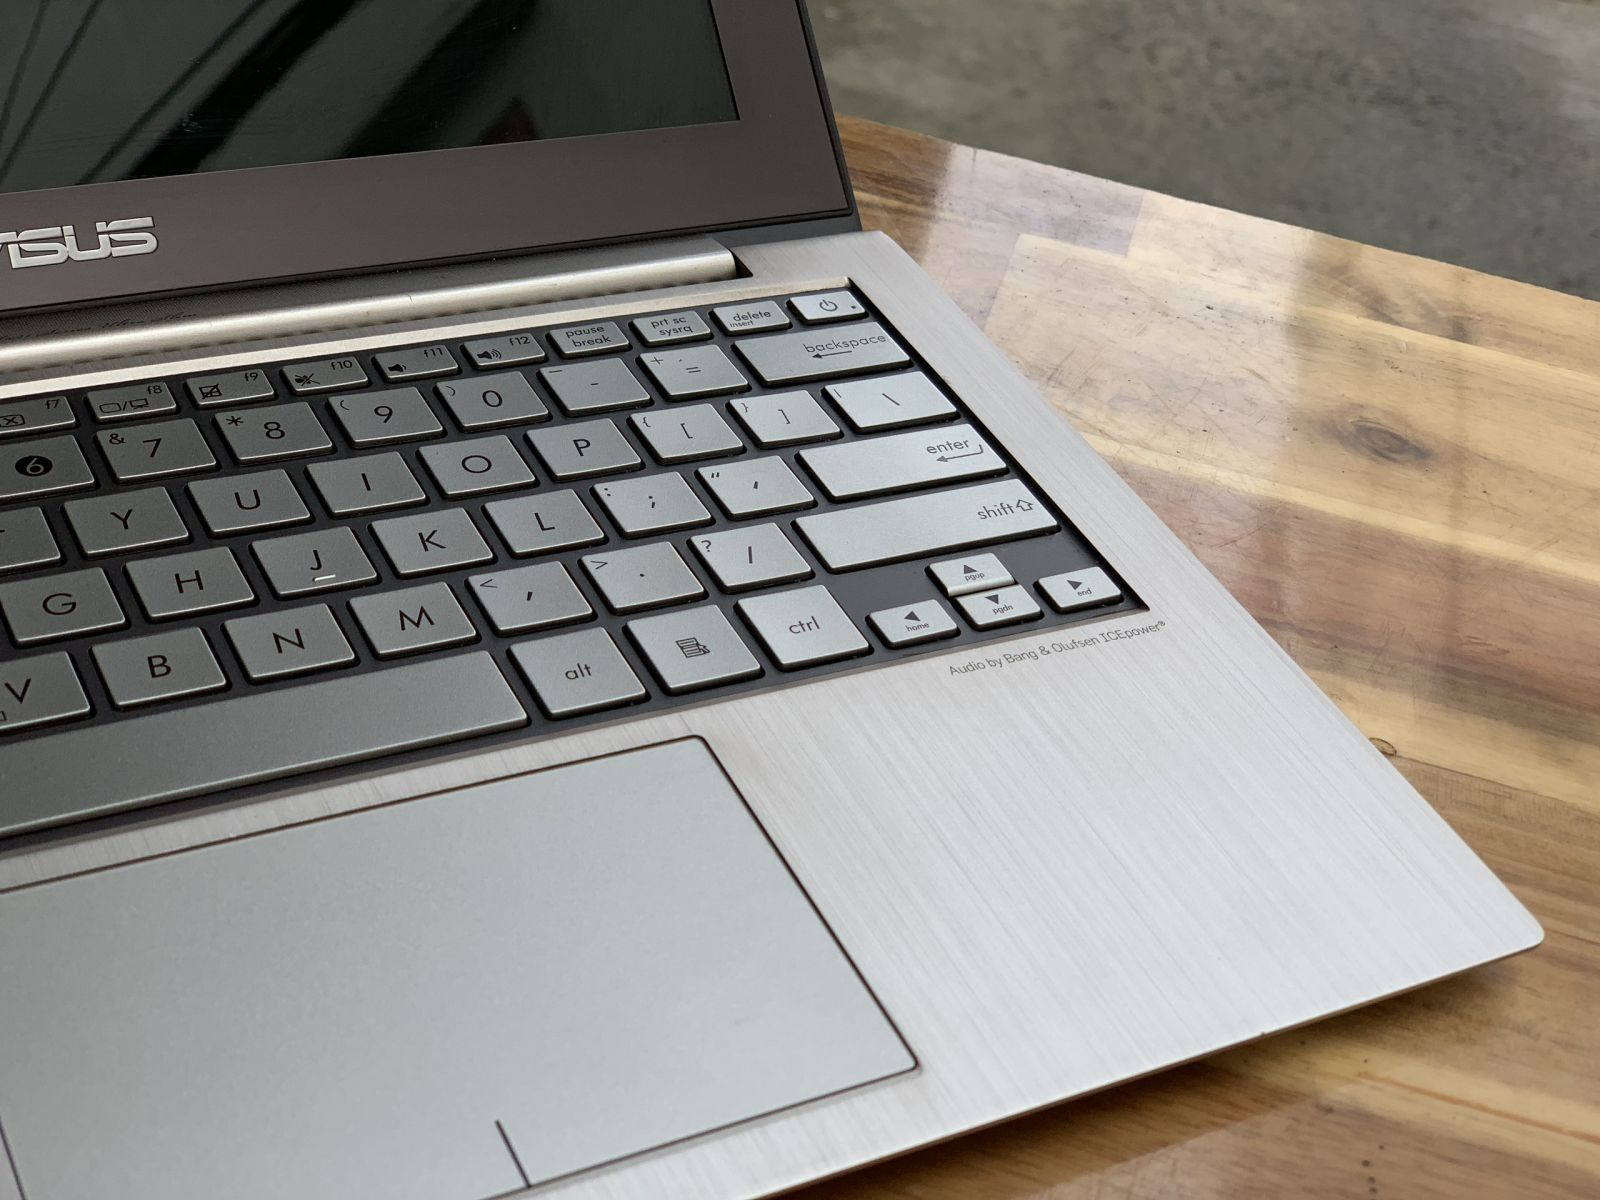 Laptop Asus Zenbook UX21E/ i5 2467M/ 4G/ SSD256/ 12in/ Giá rẻ1